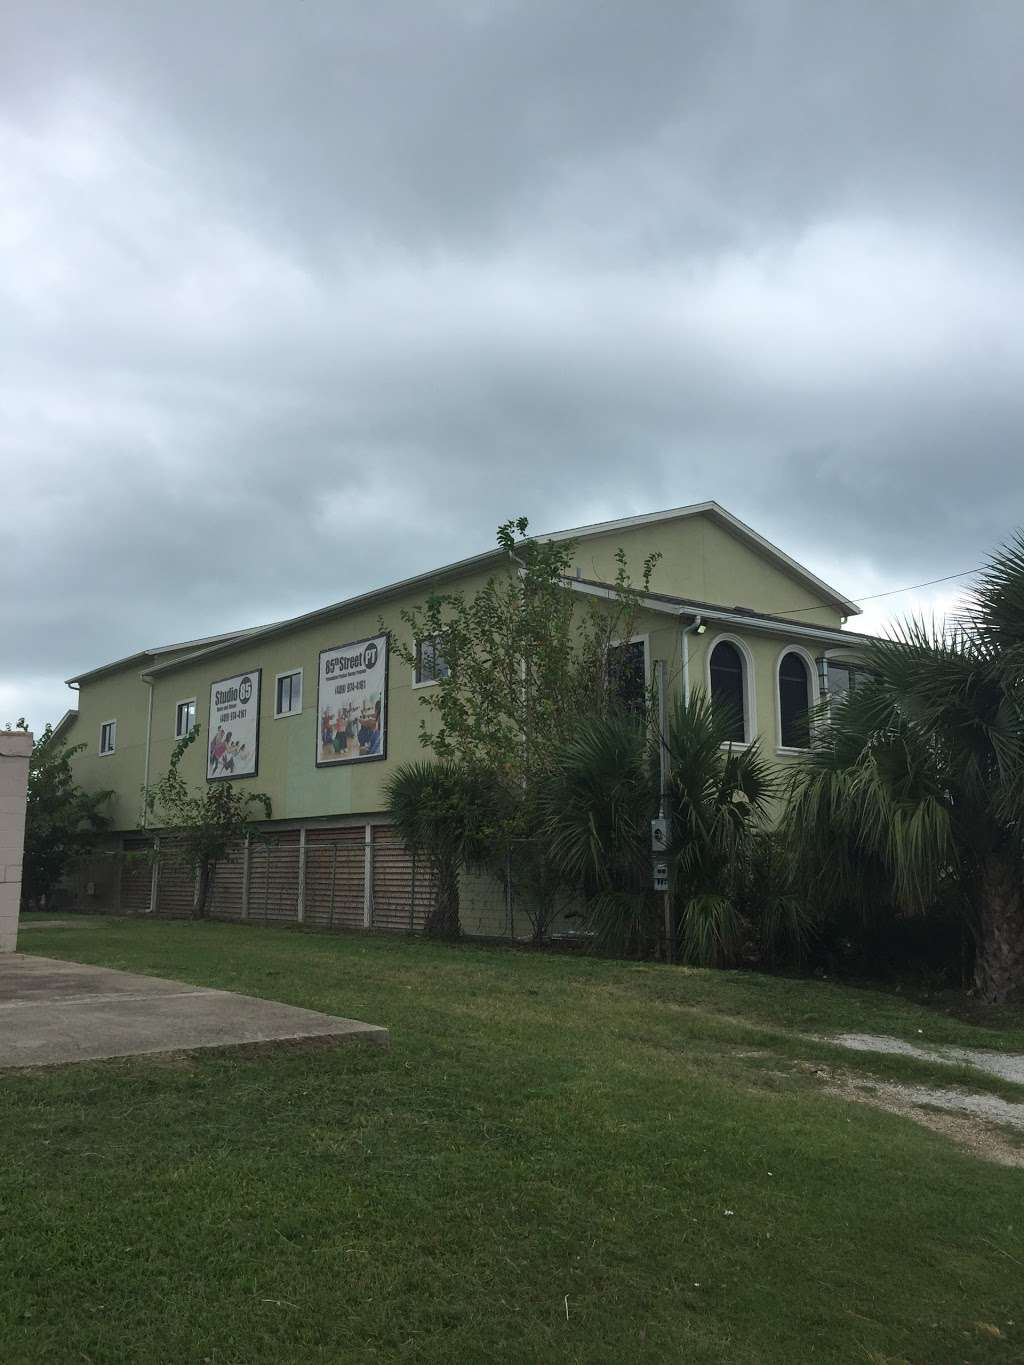 85th Street Physical Therapy - health  | Photo 3 of 10 | Address: 3622 85th St, Galveston, TX 77554, USA | Phone: (409) 974-4161